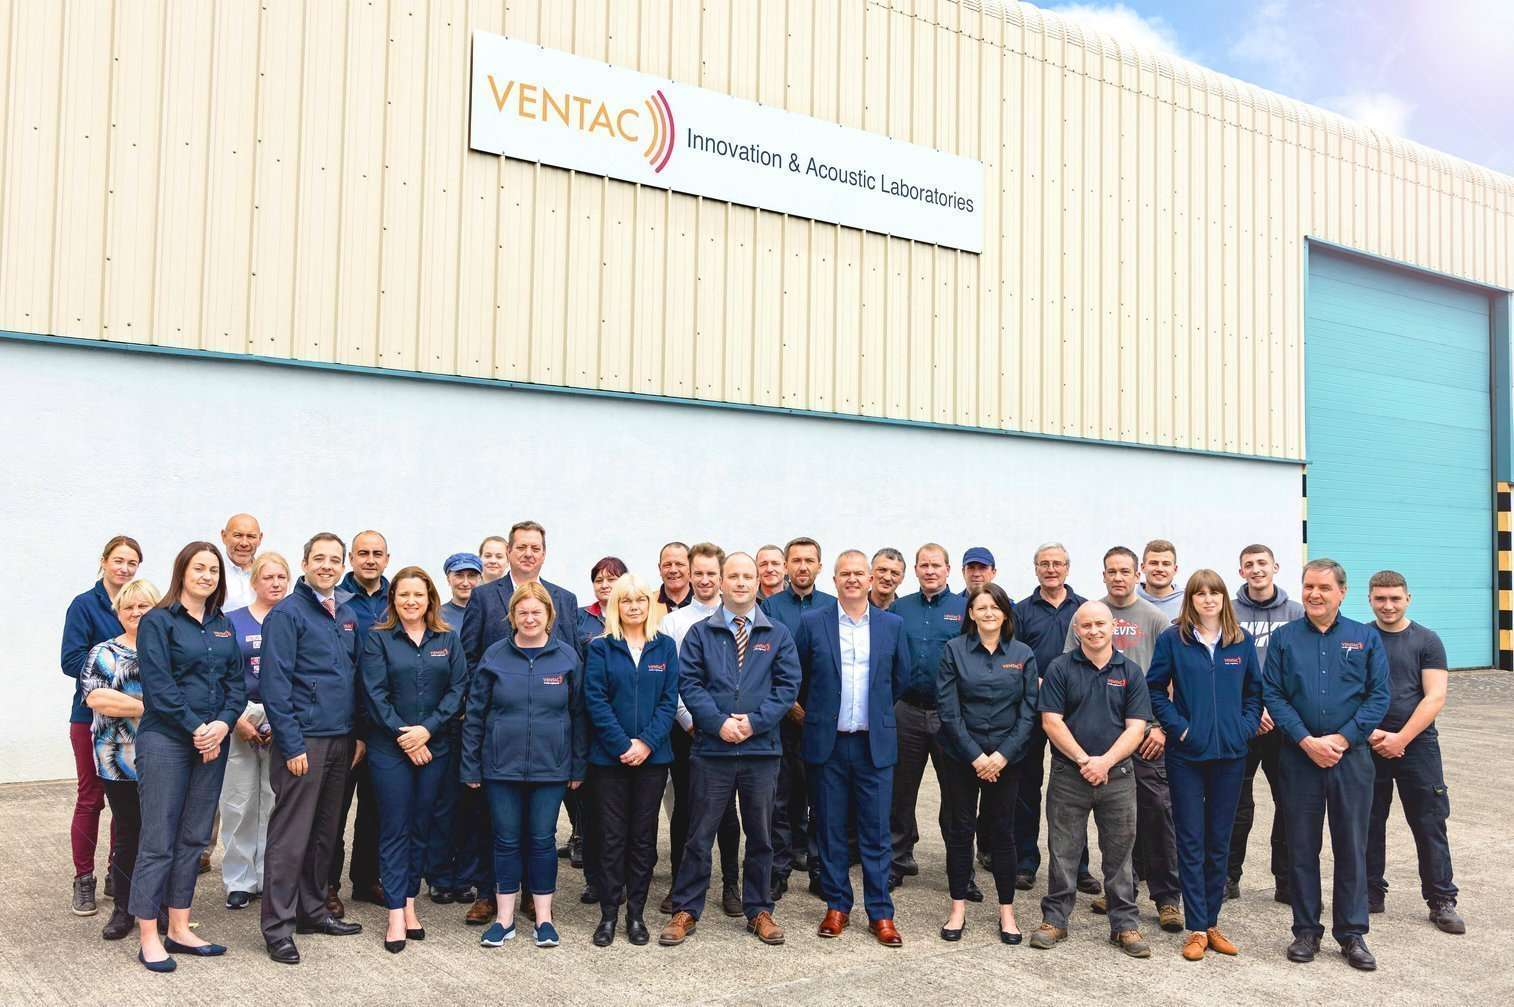 The team at Ventac